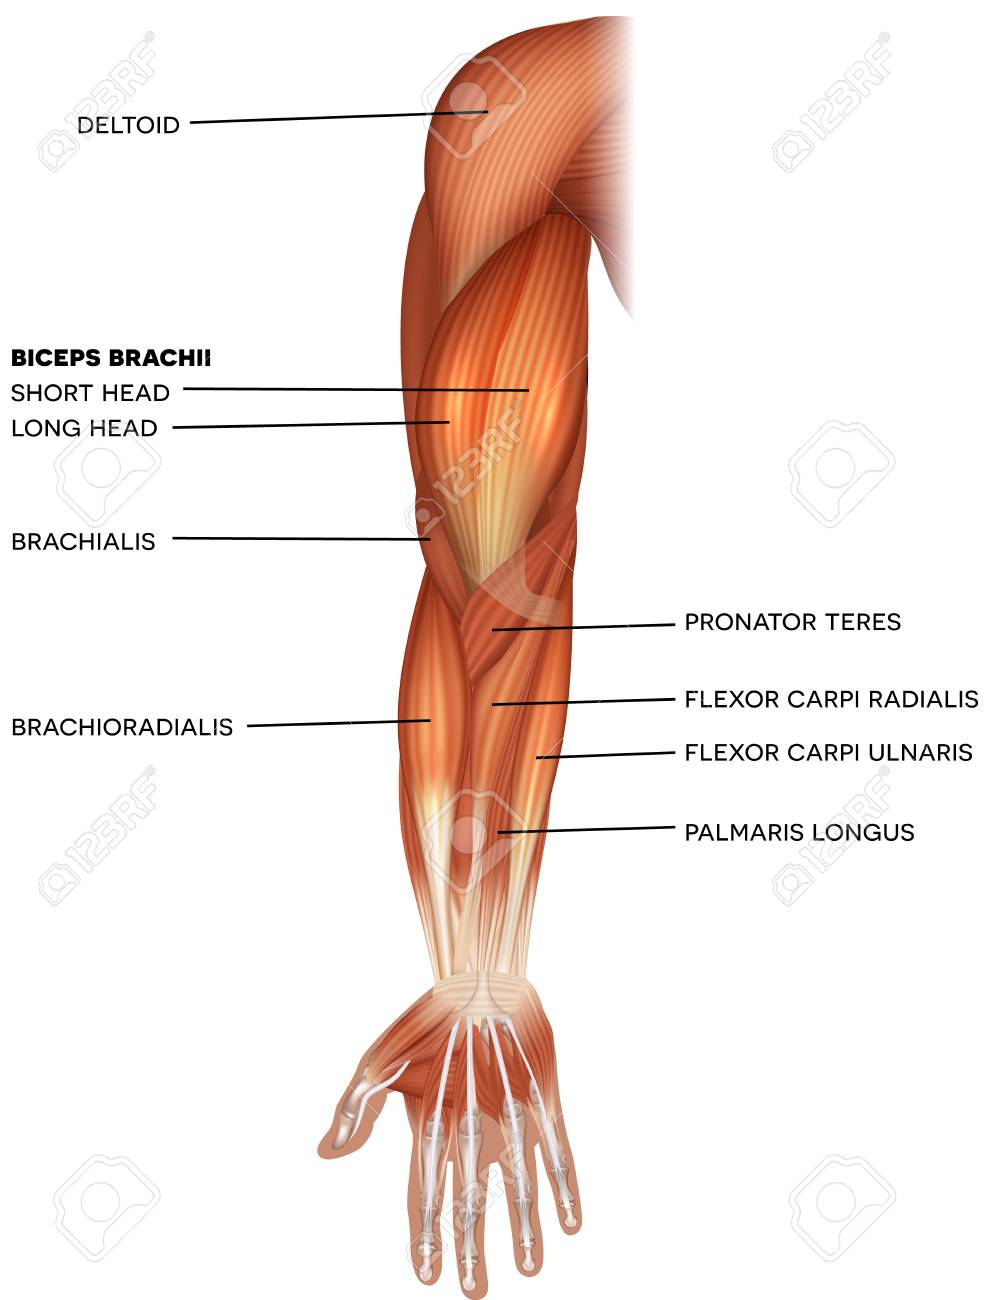 Muscles of the hand and arm beautiful bright illustration on a white background - 114773268